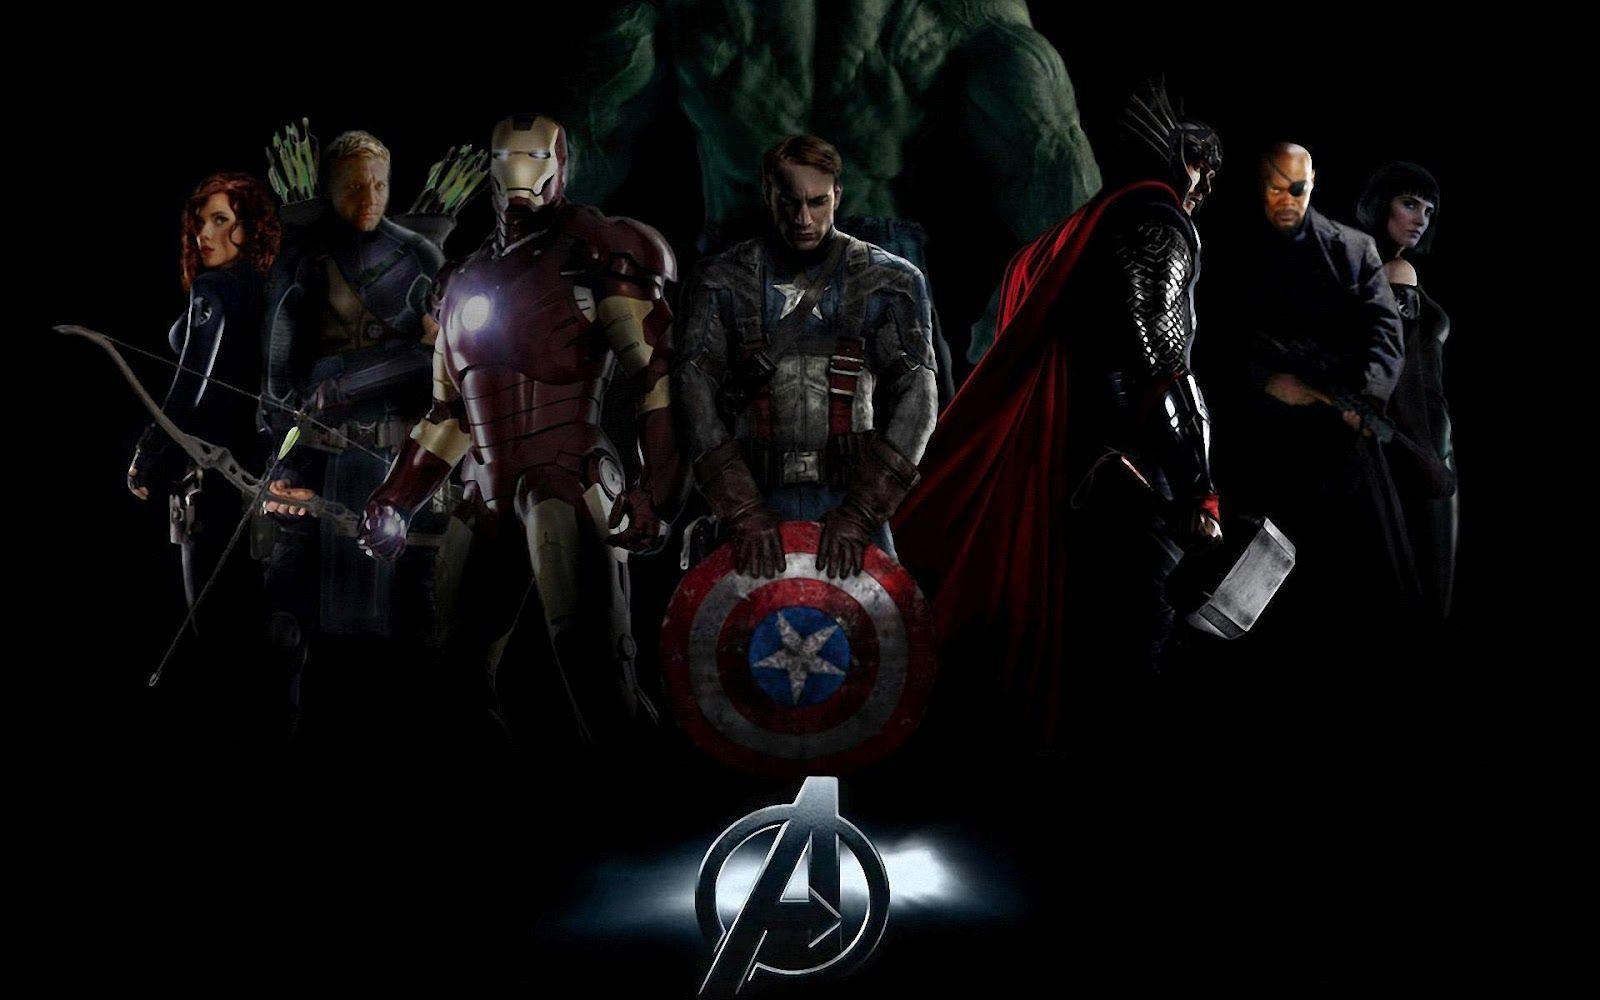 Image For > Avengers Wallpapers Hd 1080p